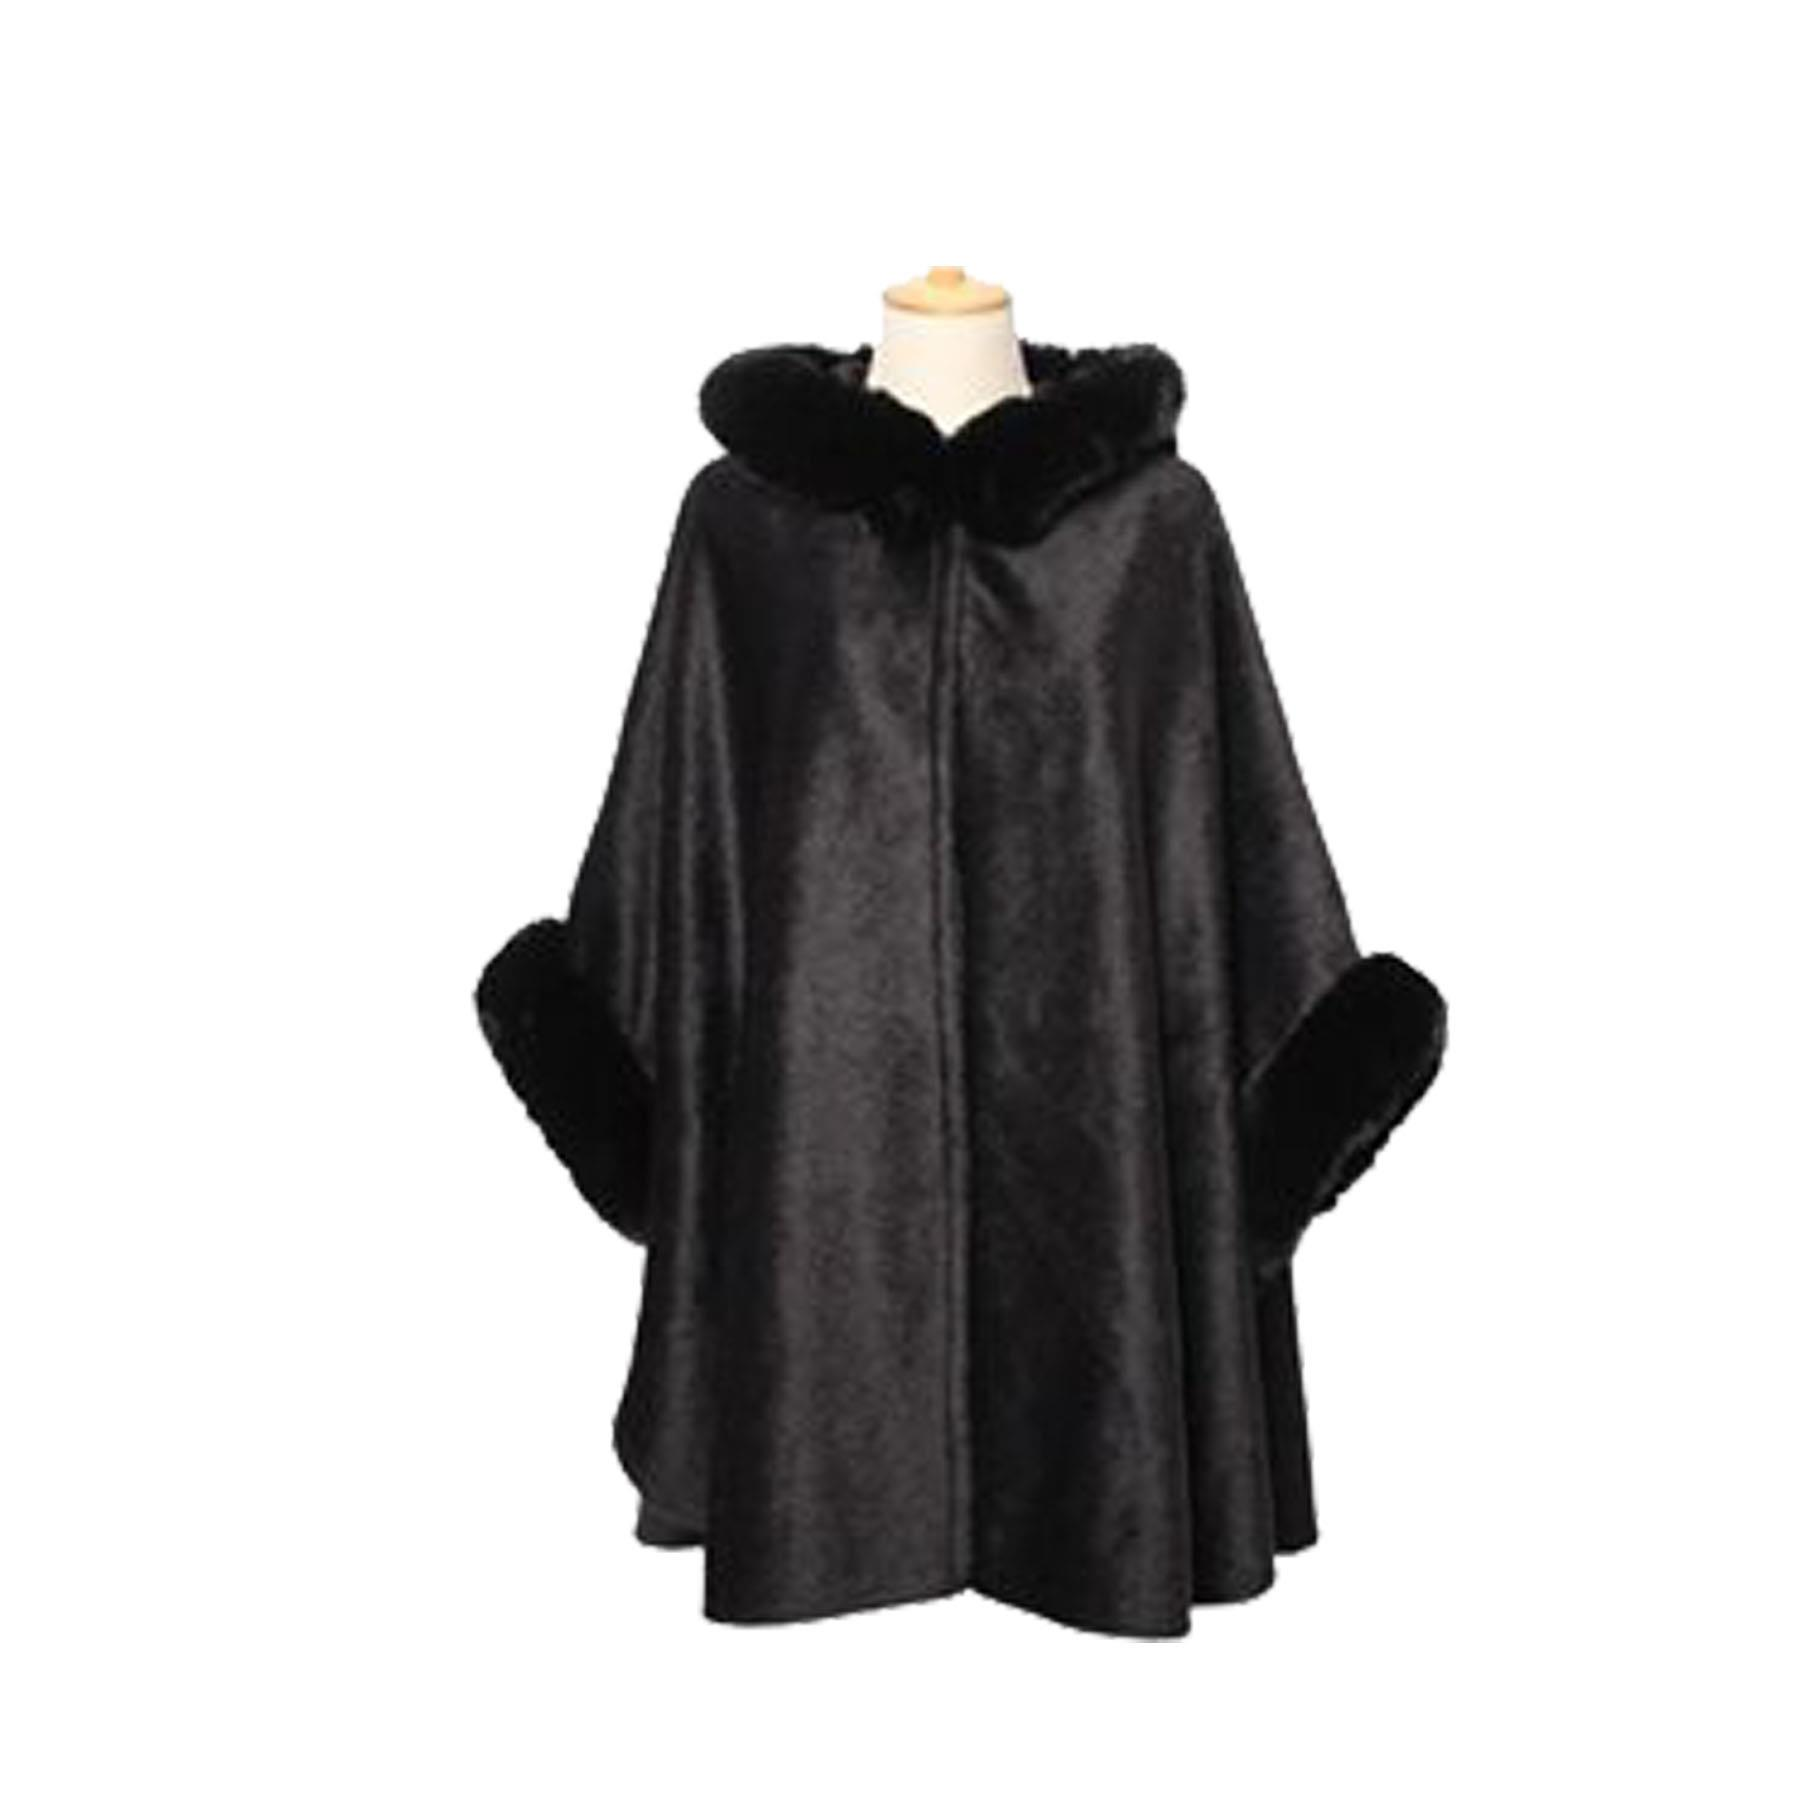 New-Synthetic-Fur-Trimming-Hooded-Collared-Women-s-Autumn-Winter-Poncho thumbnail 7